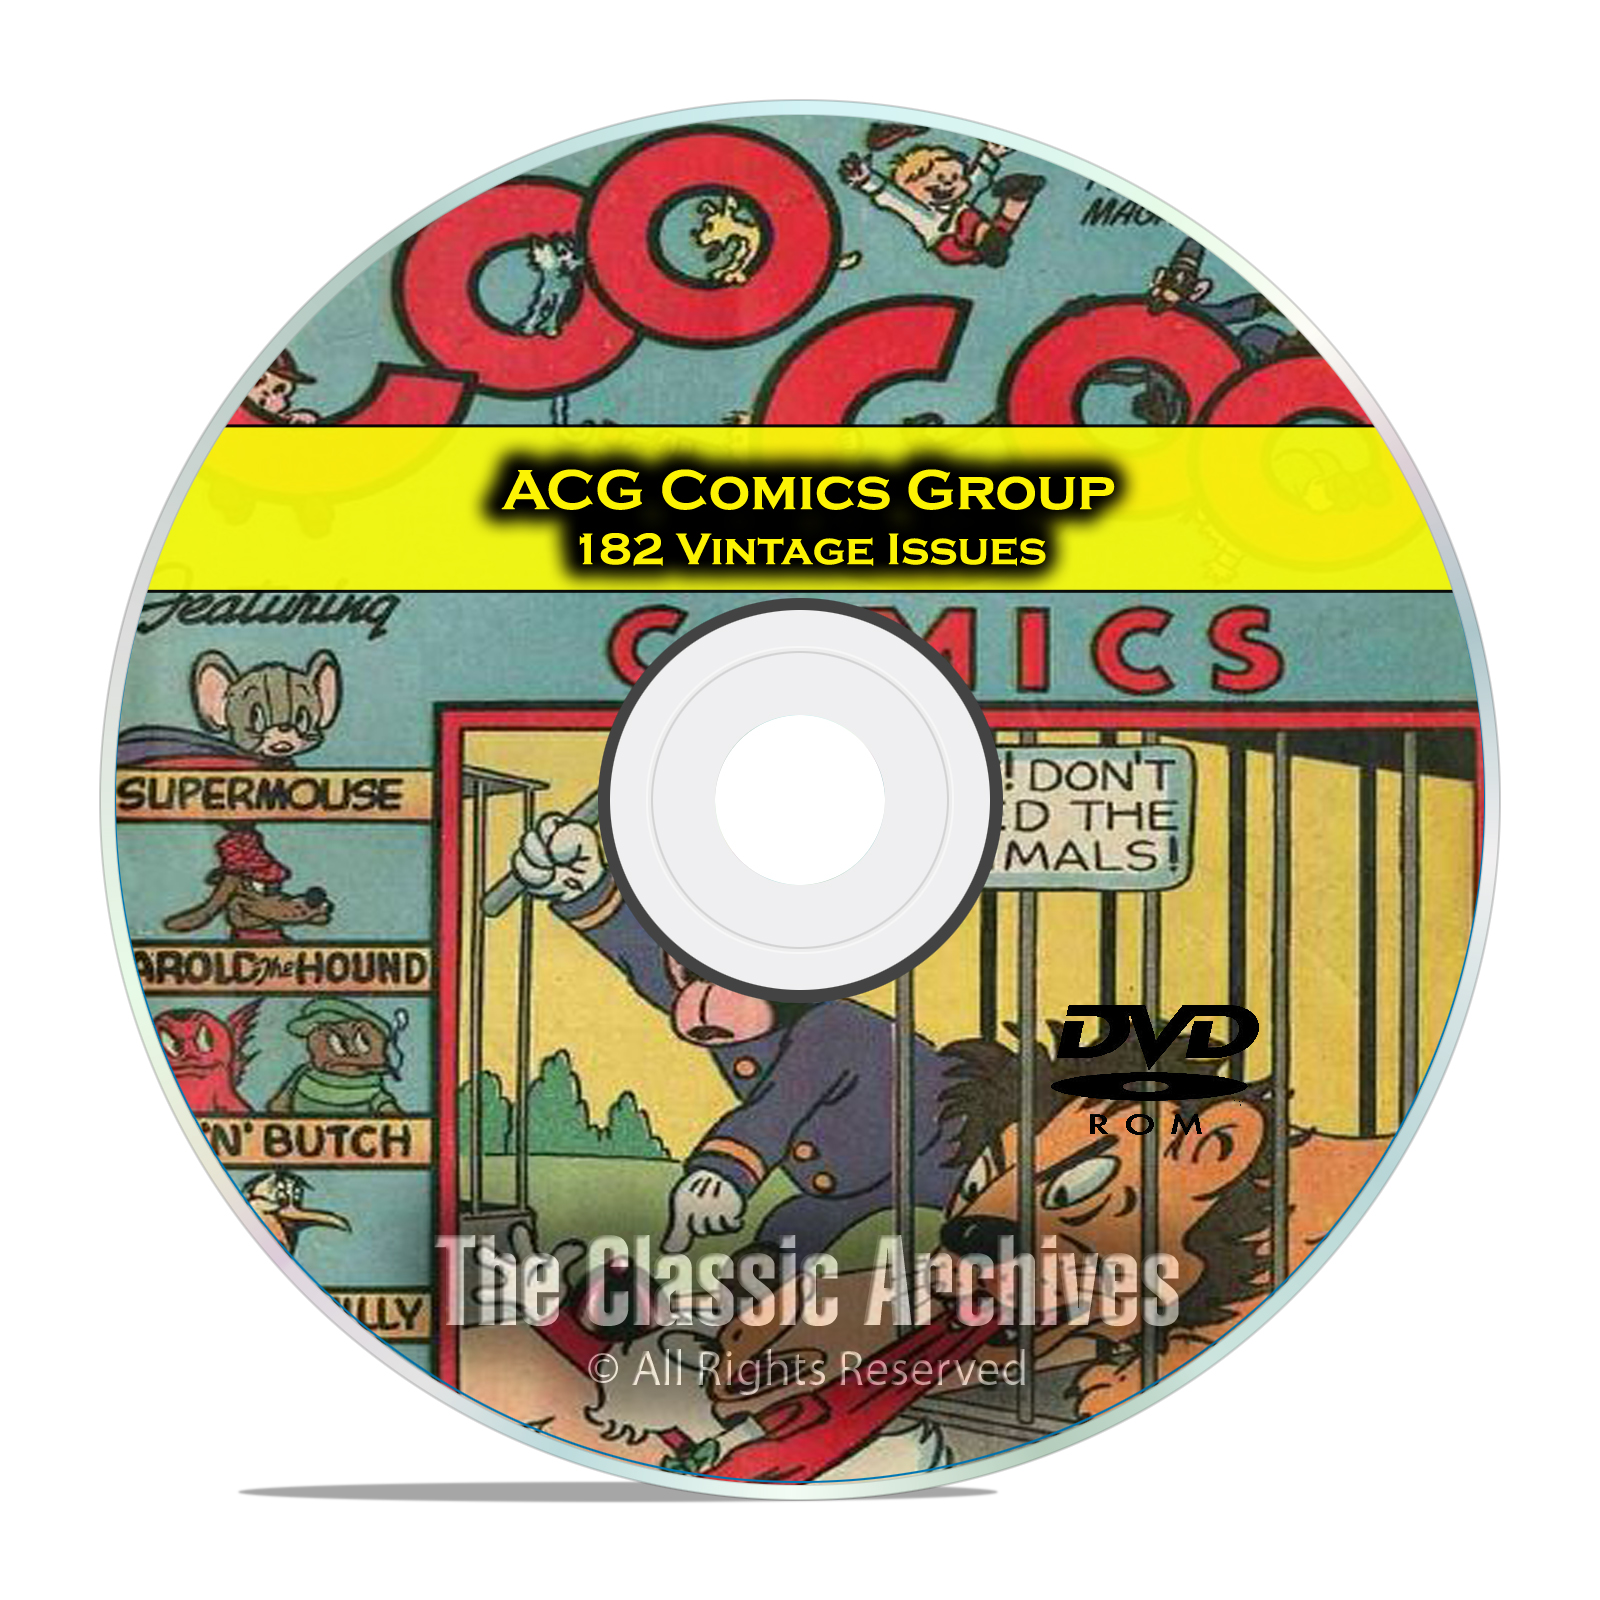 ACG Comics Coo Coo Comics, Kilroys, Cookie, Penny 182 Golden Age Comics DVD